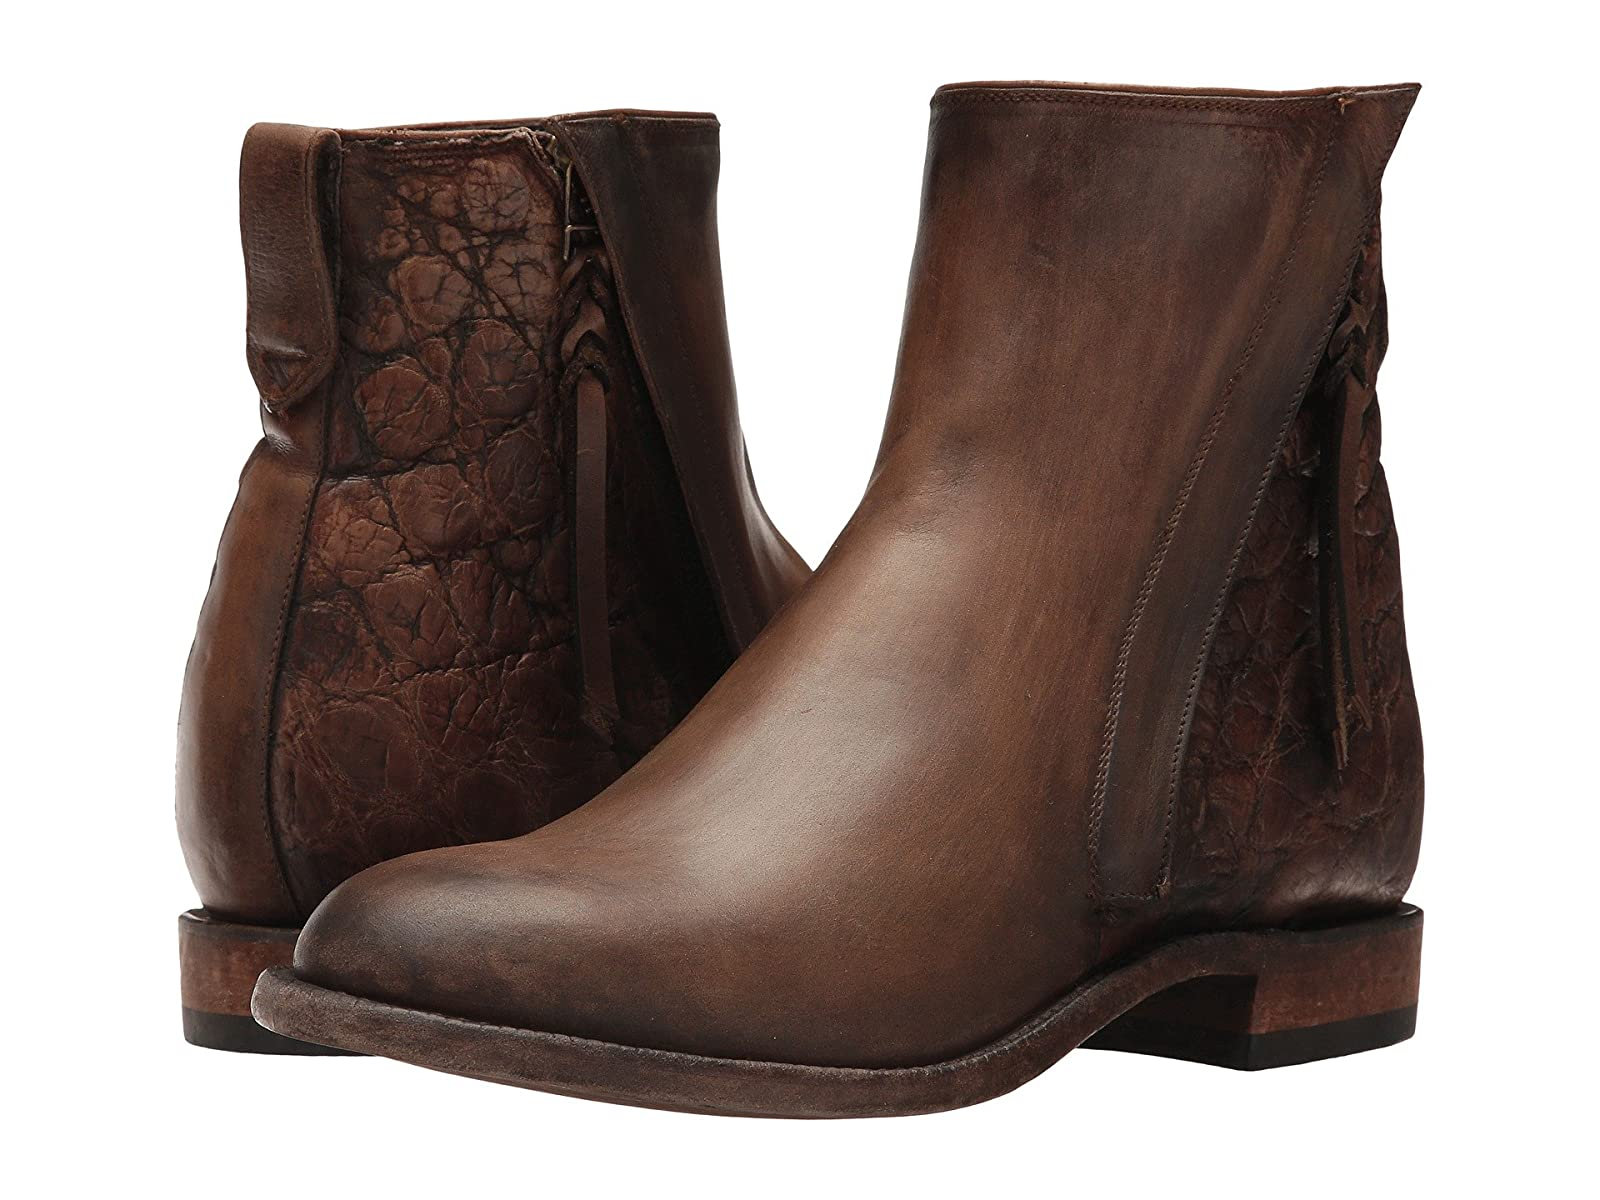 Lucchese PeytonCheap and distinctive eye-catching shoes